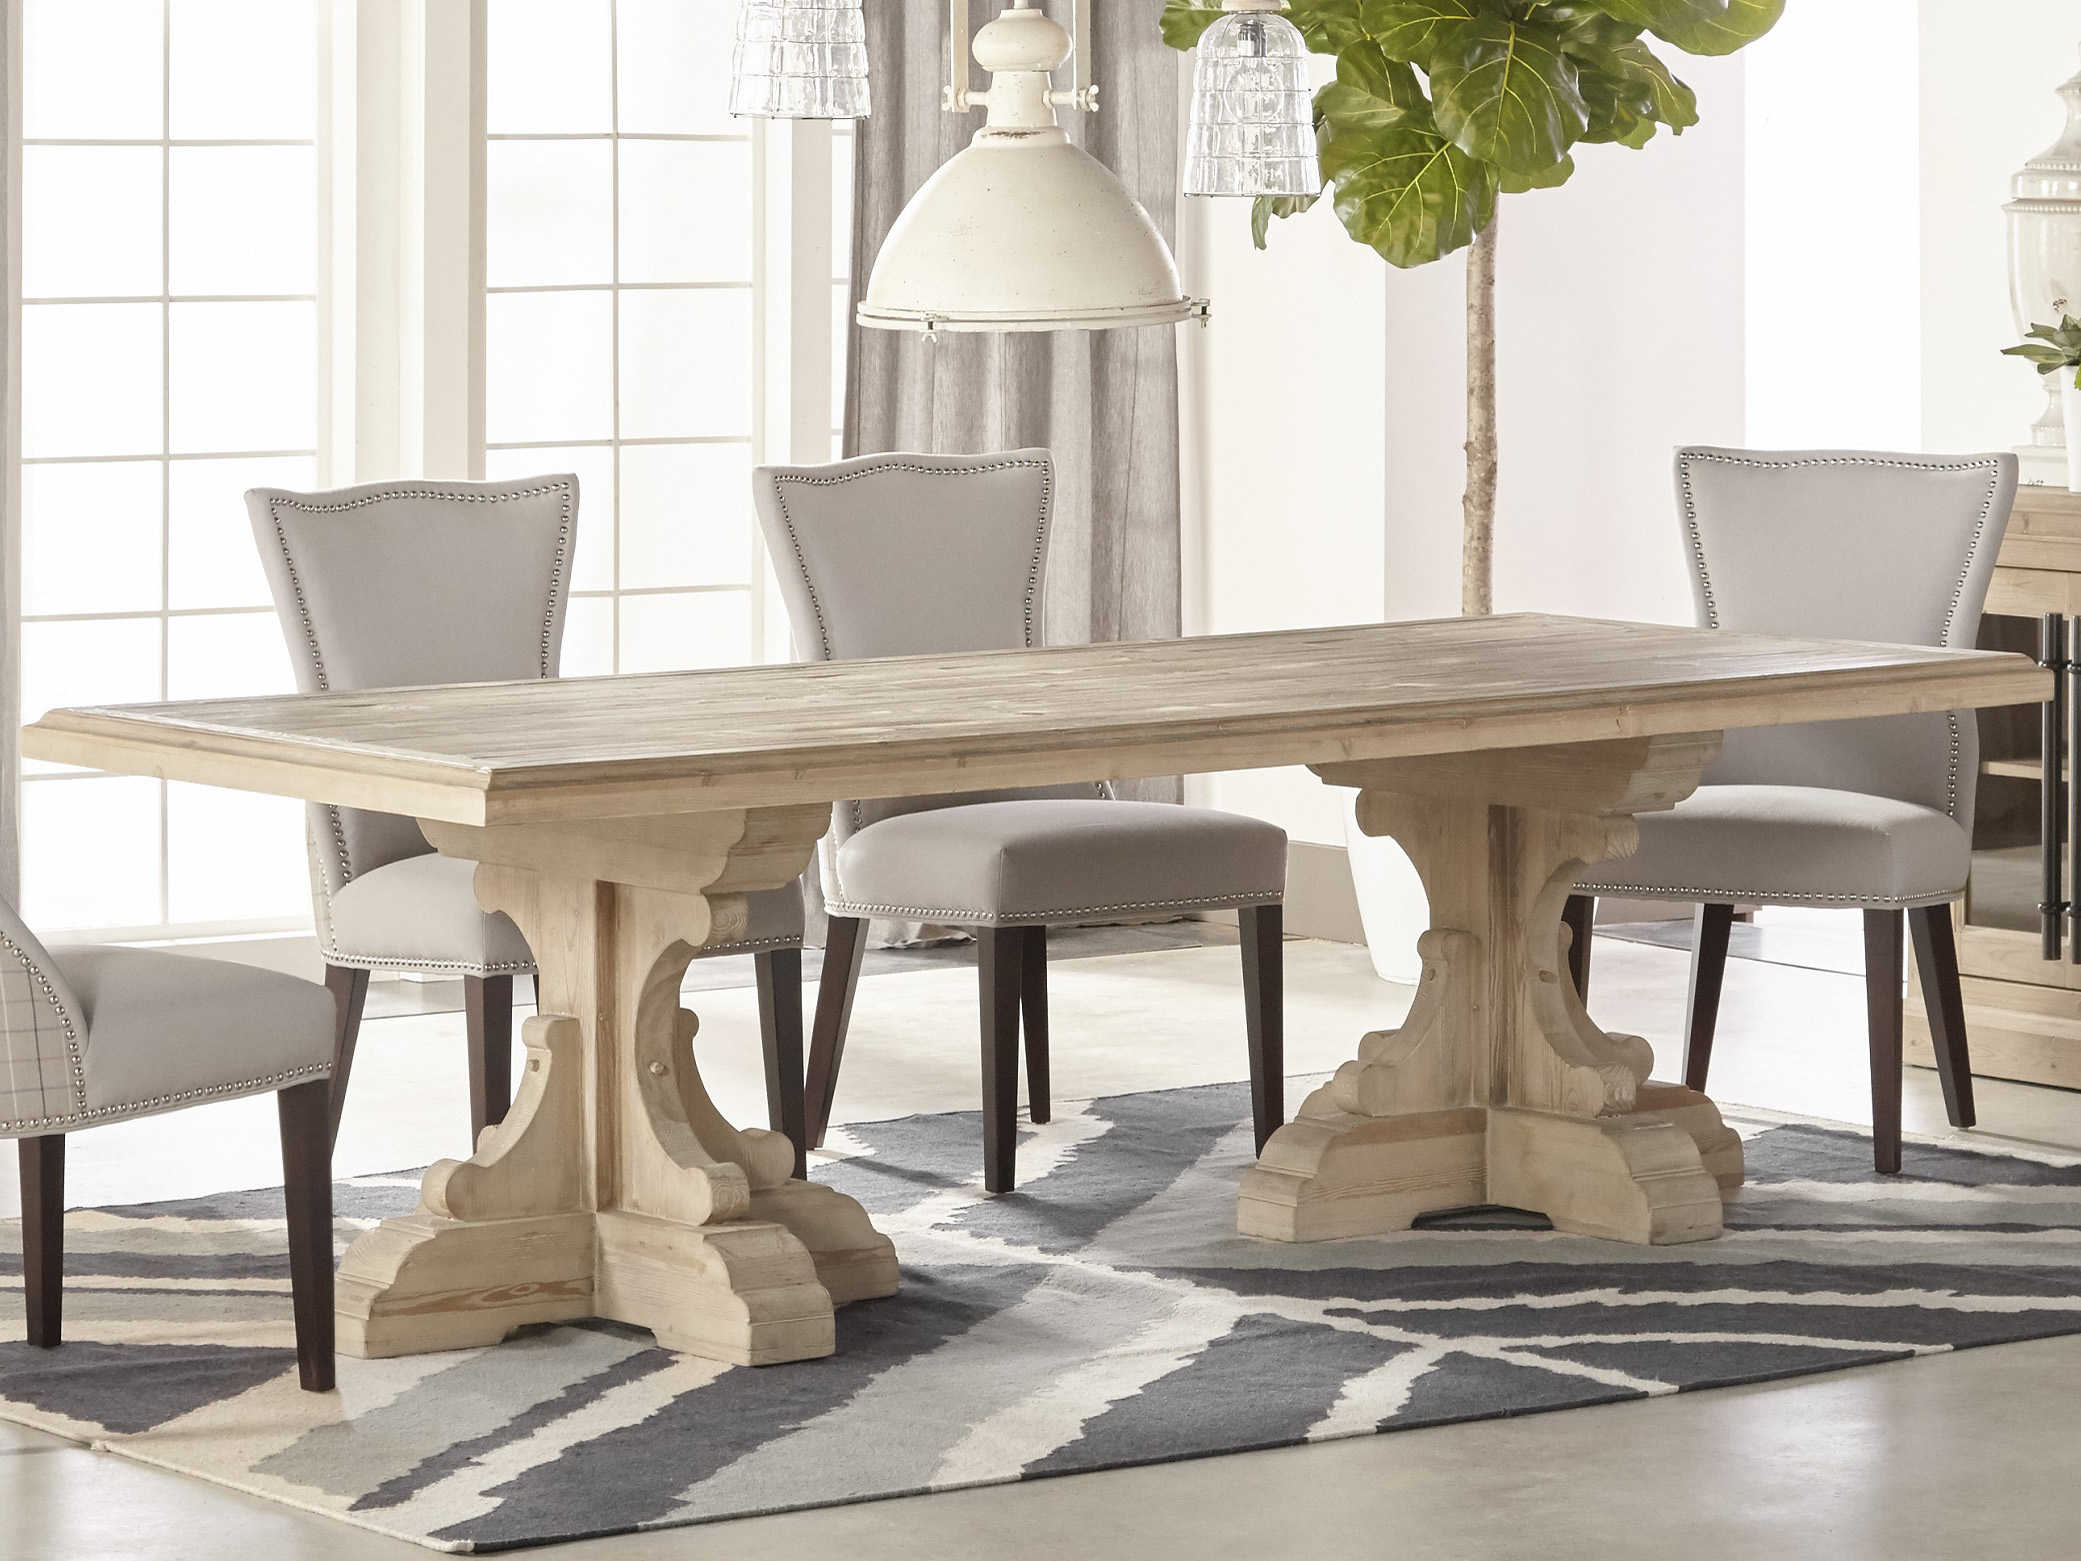 Wide Rectangular Dining Table, Antique Dining Room Table